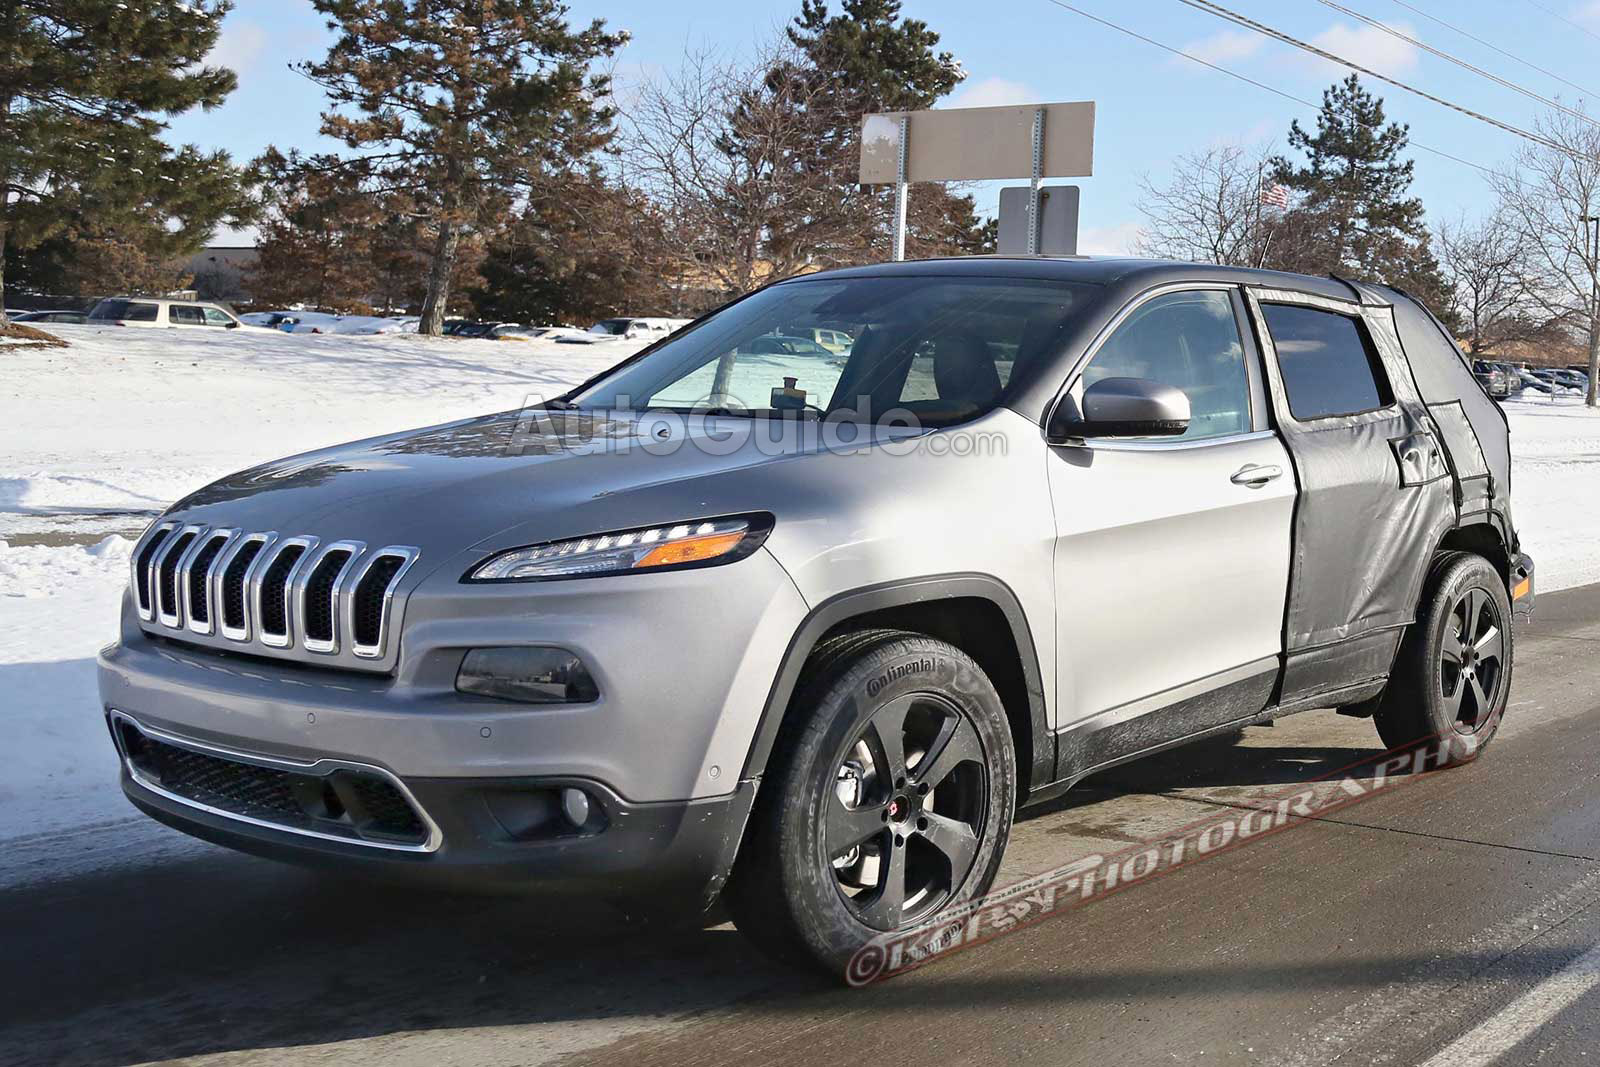 Elongated Jeep Cherokee Spied. What Does it Mean ...